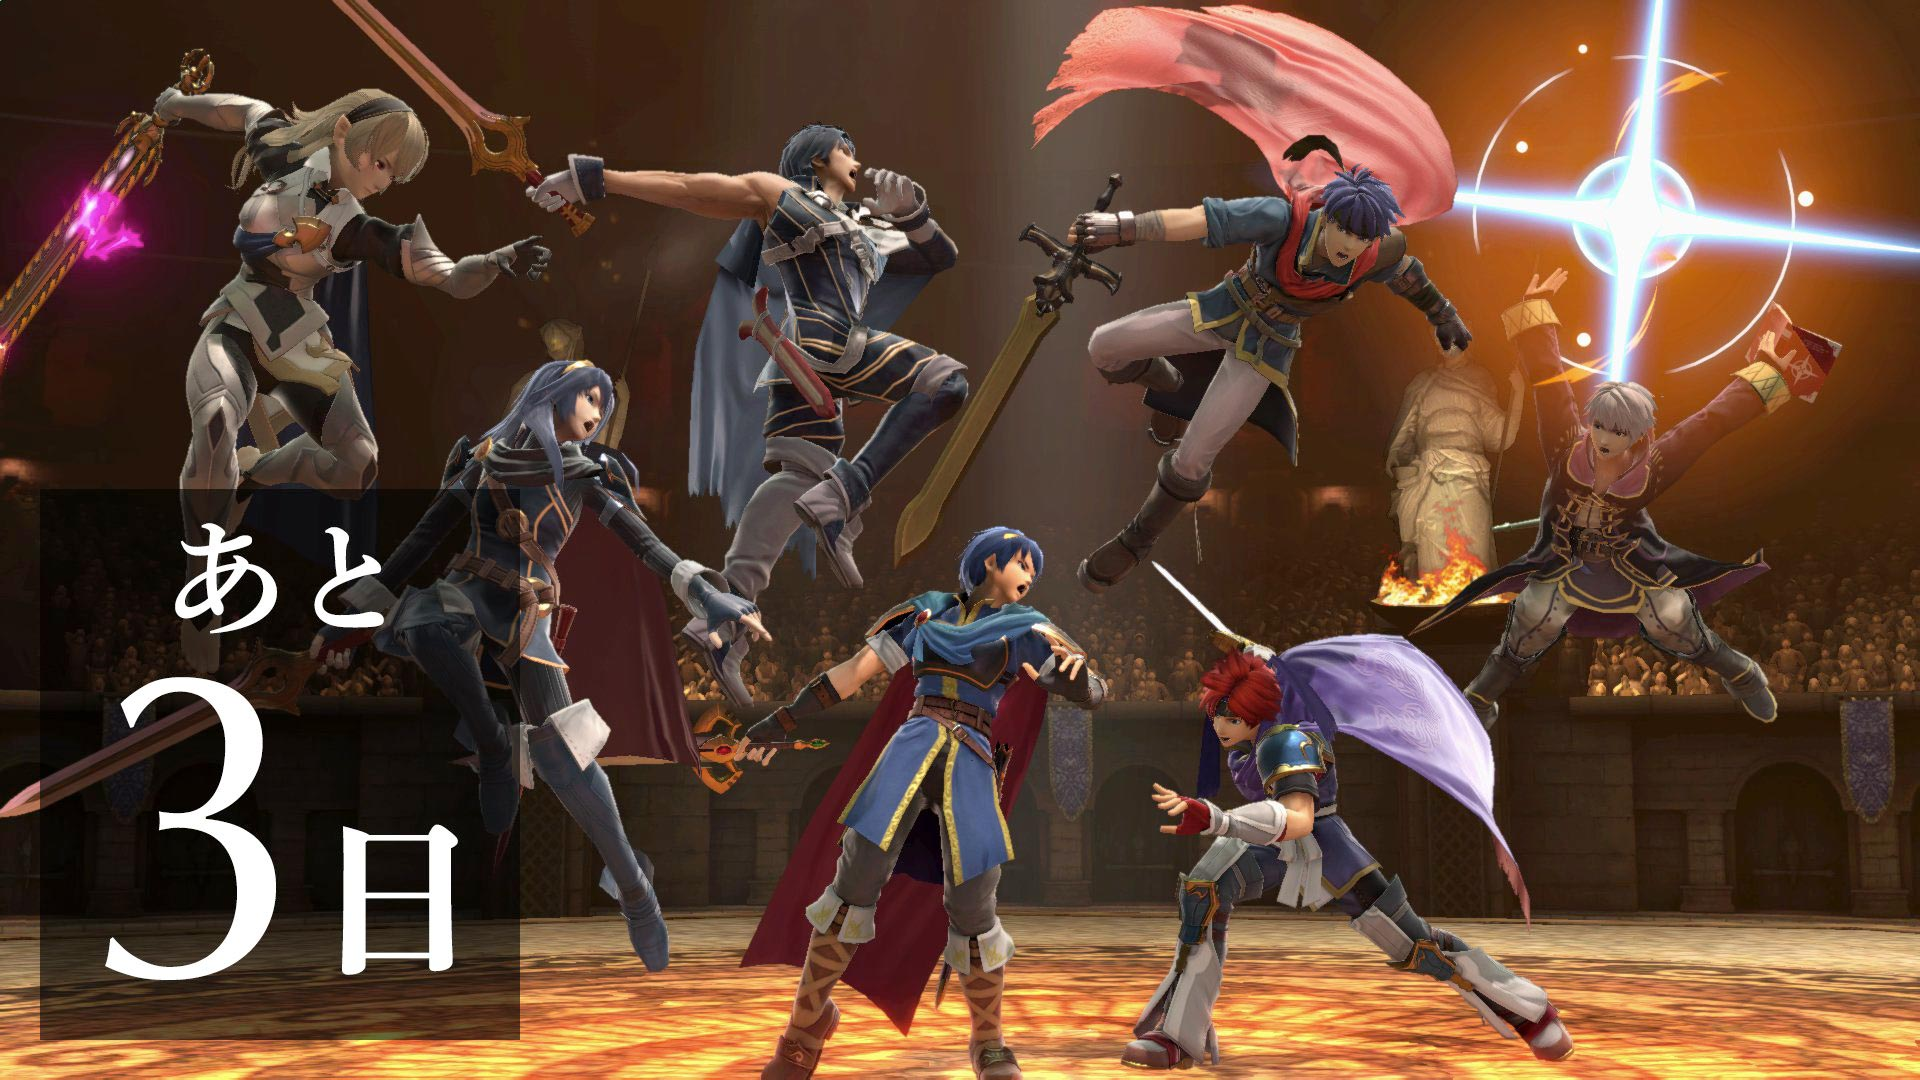 Super Smash Bros. Ultimate countdown art part 2 5 out of 9 image gallery